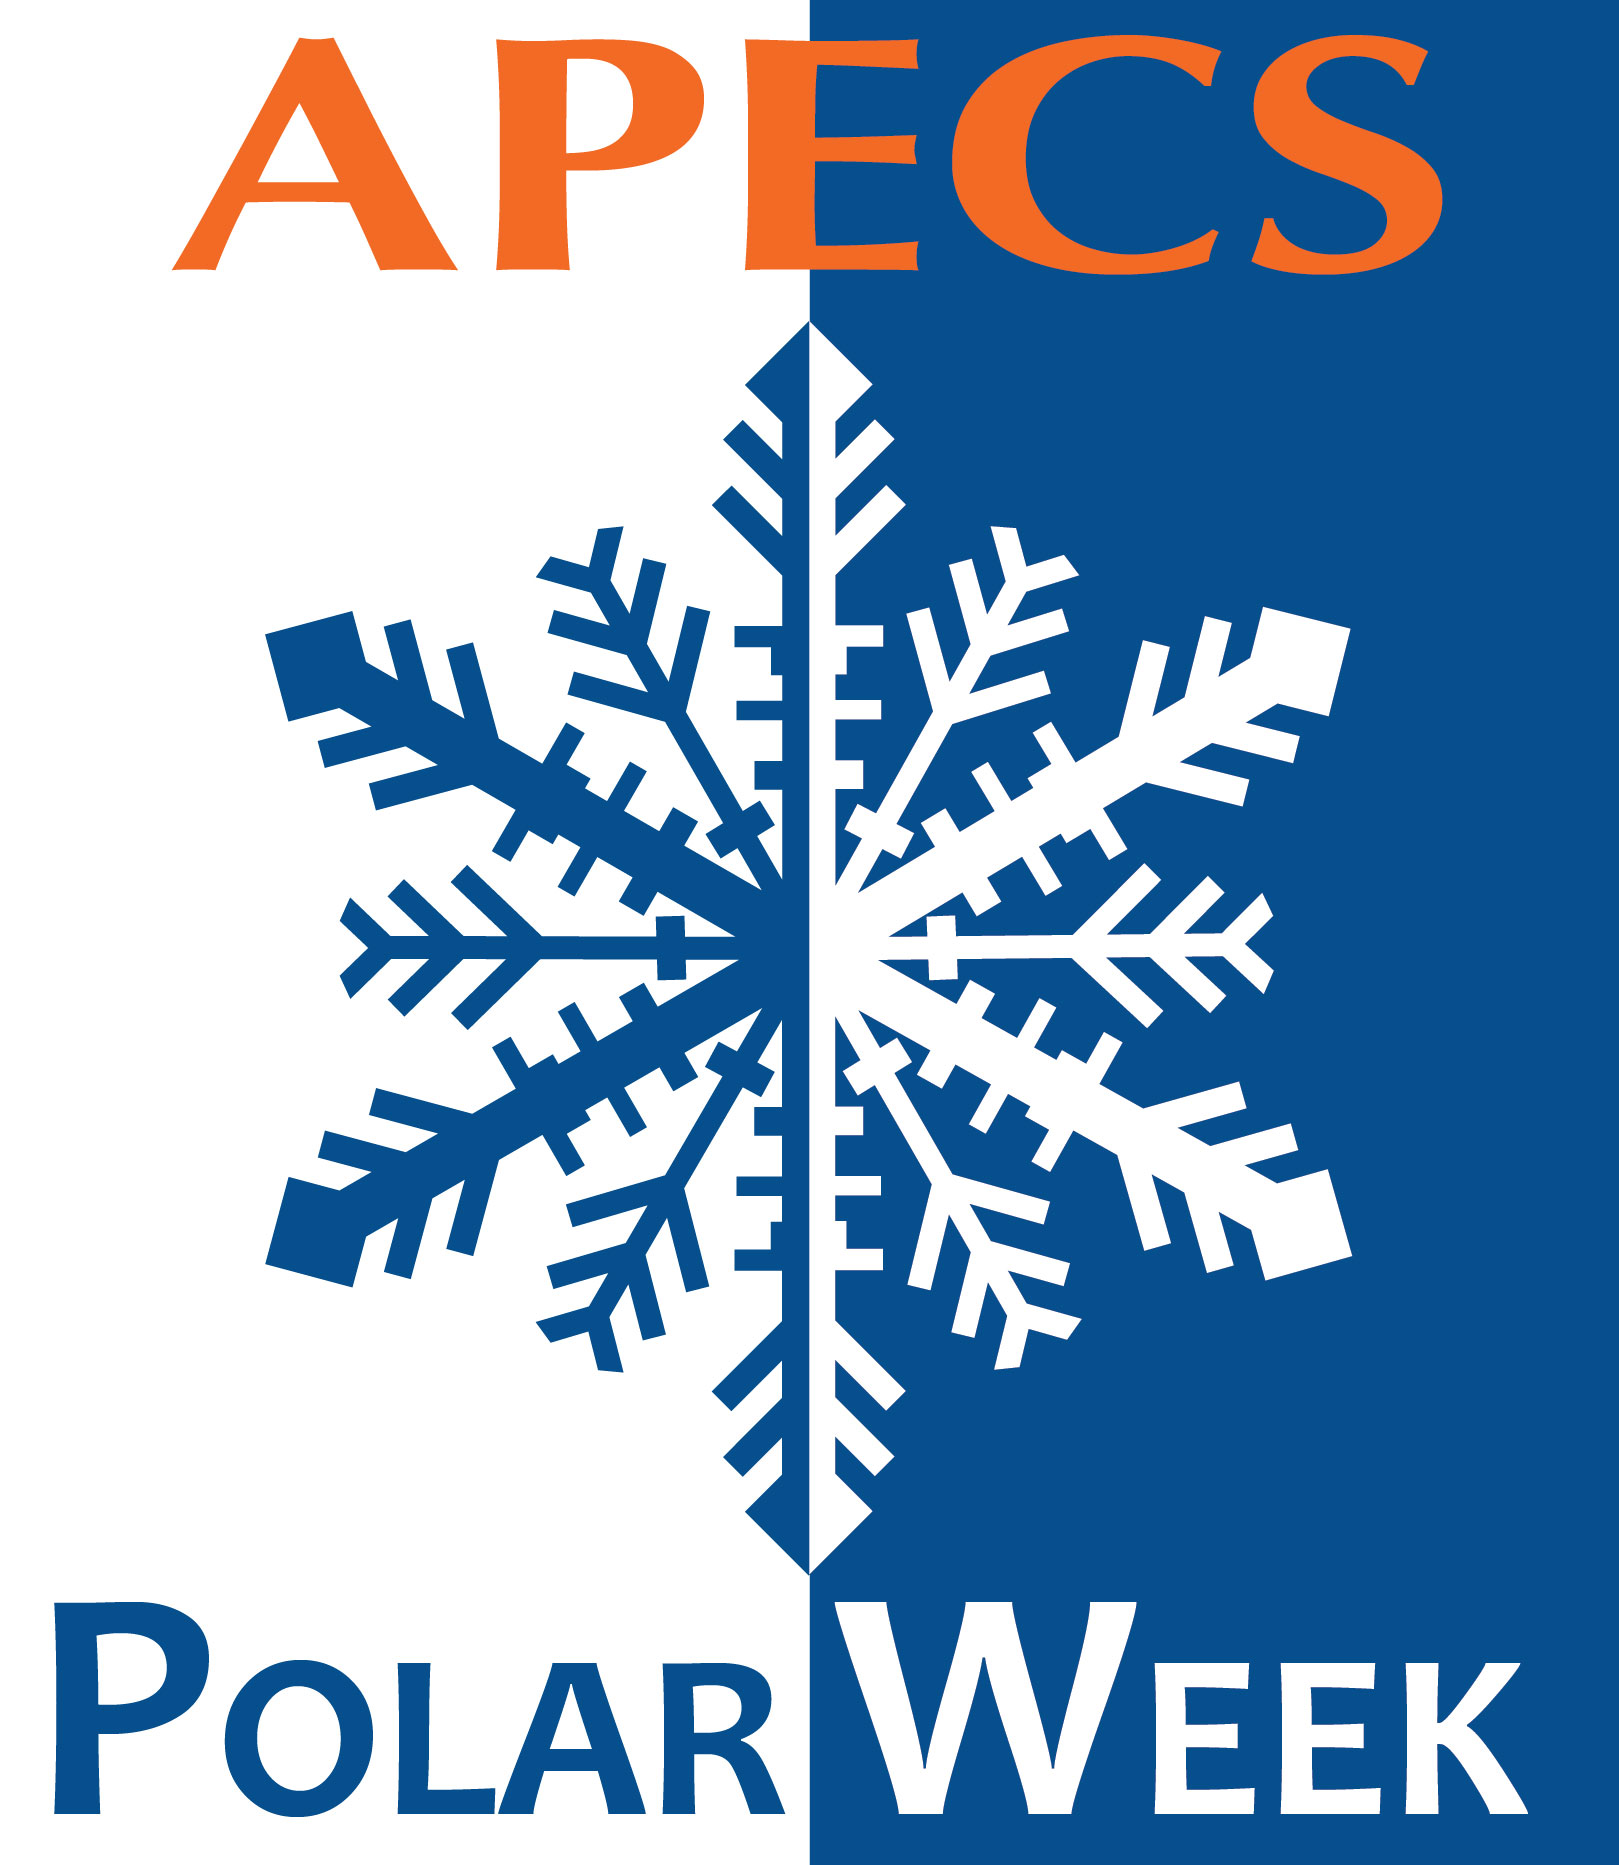 polar week logo 0